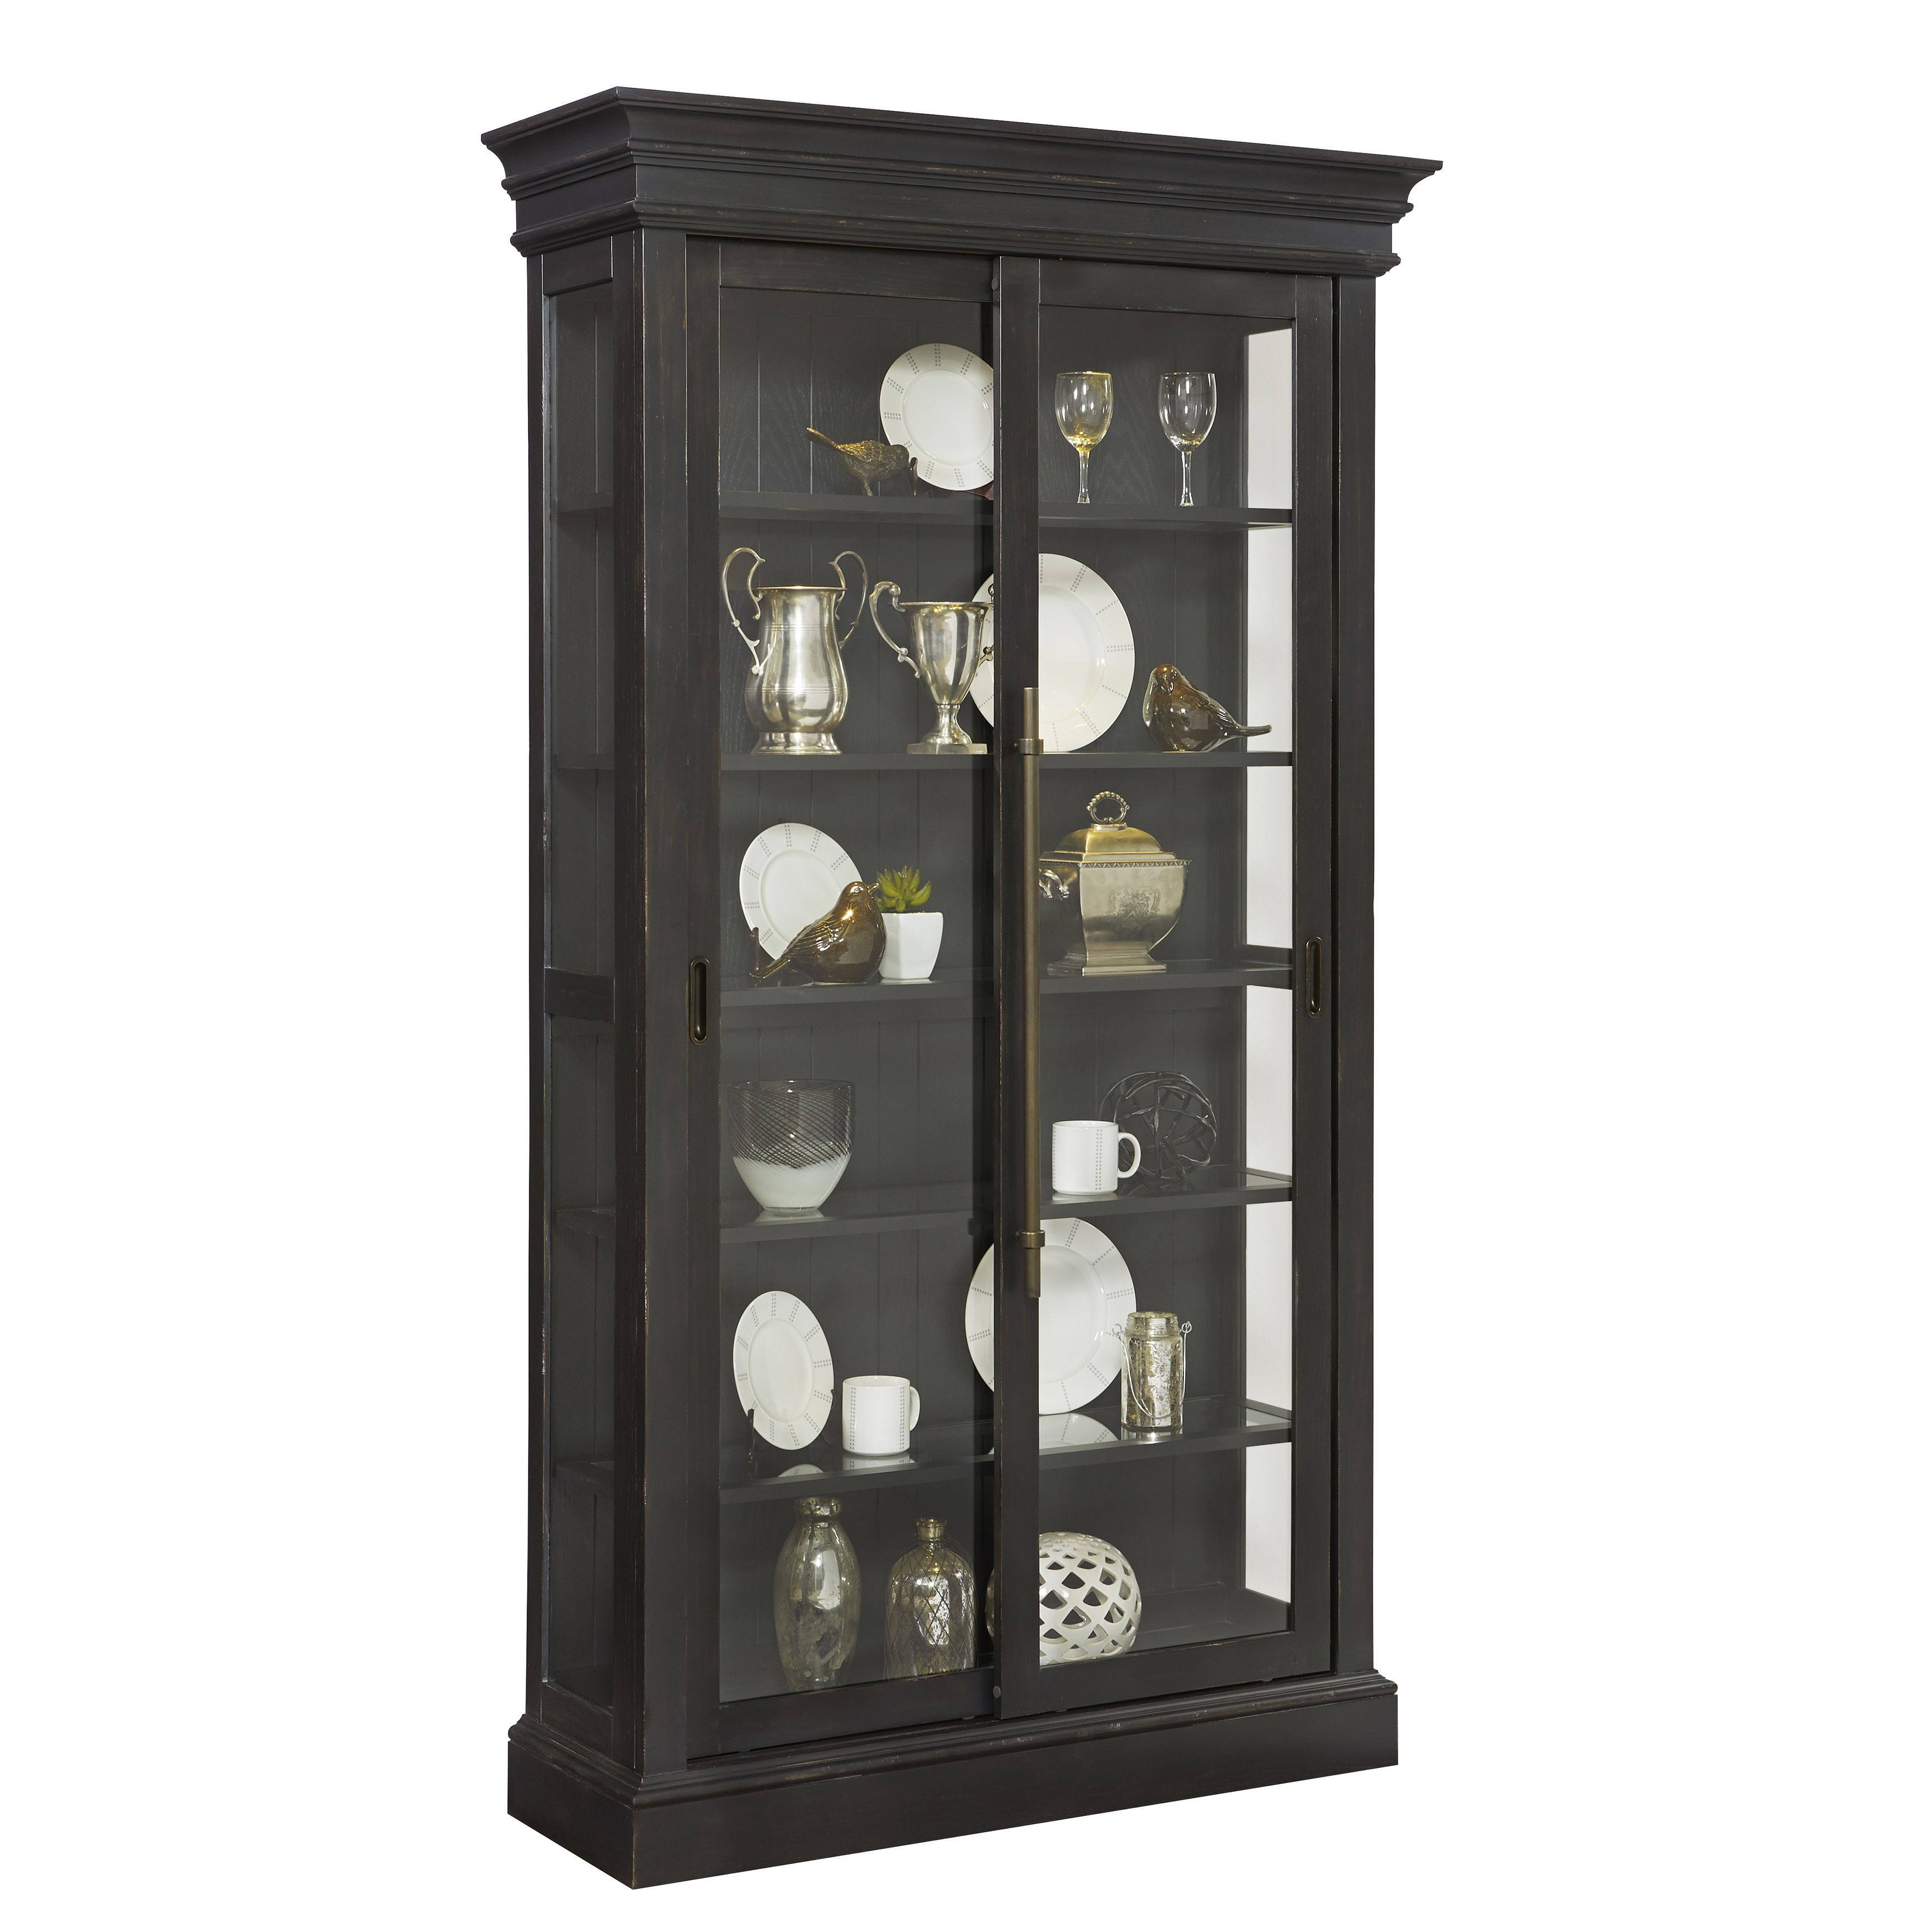 An updated take on a traditional curio this display cabinet mixes